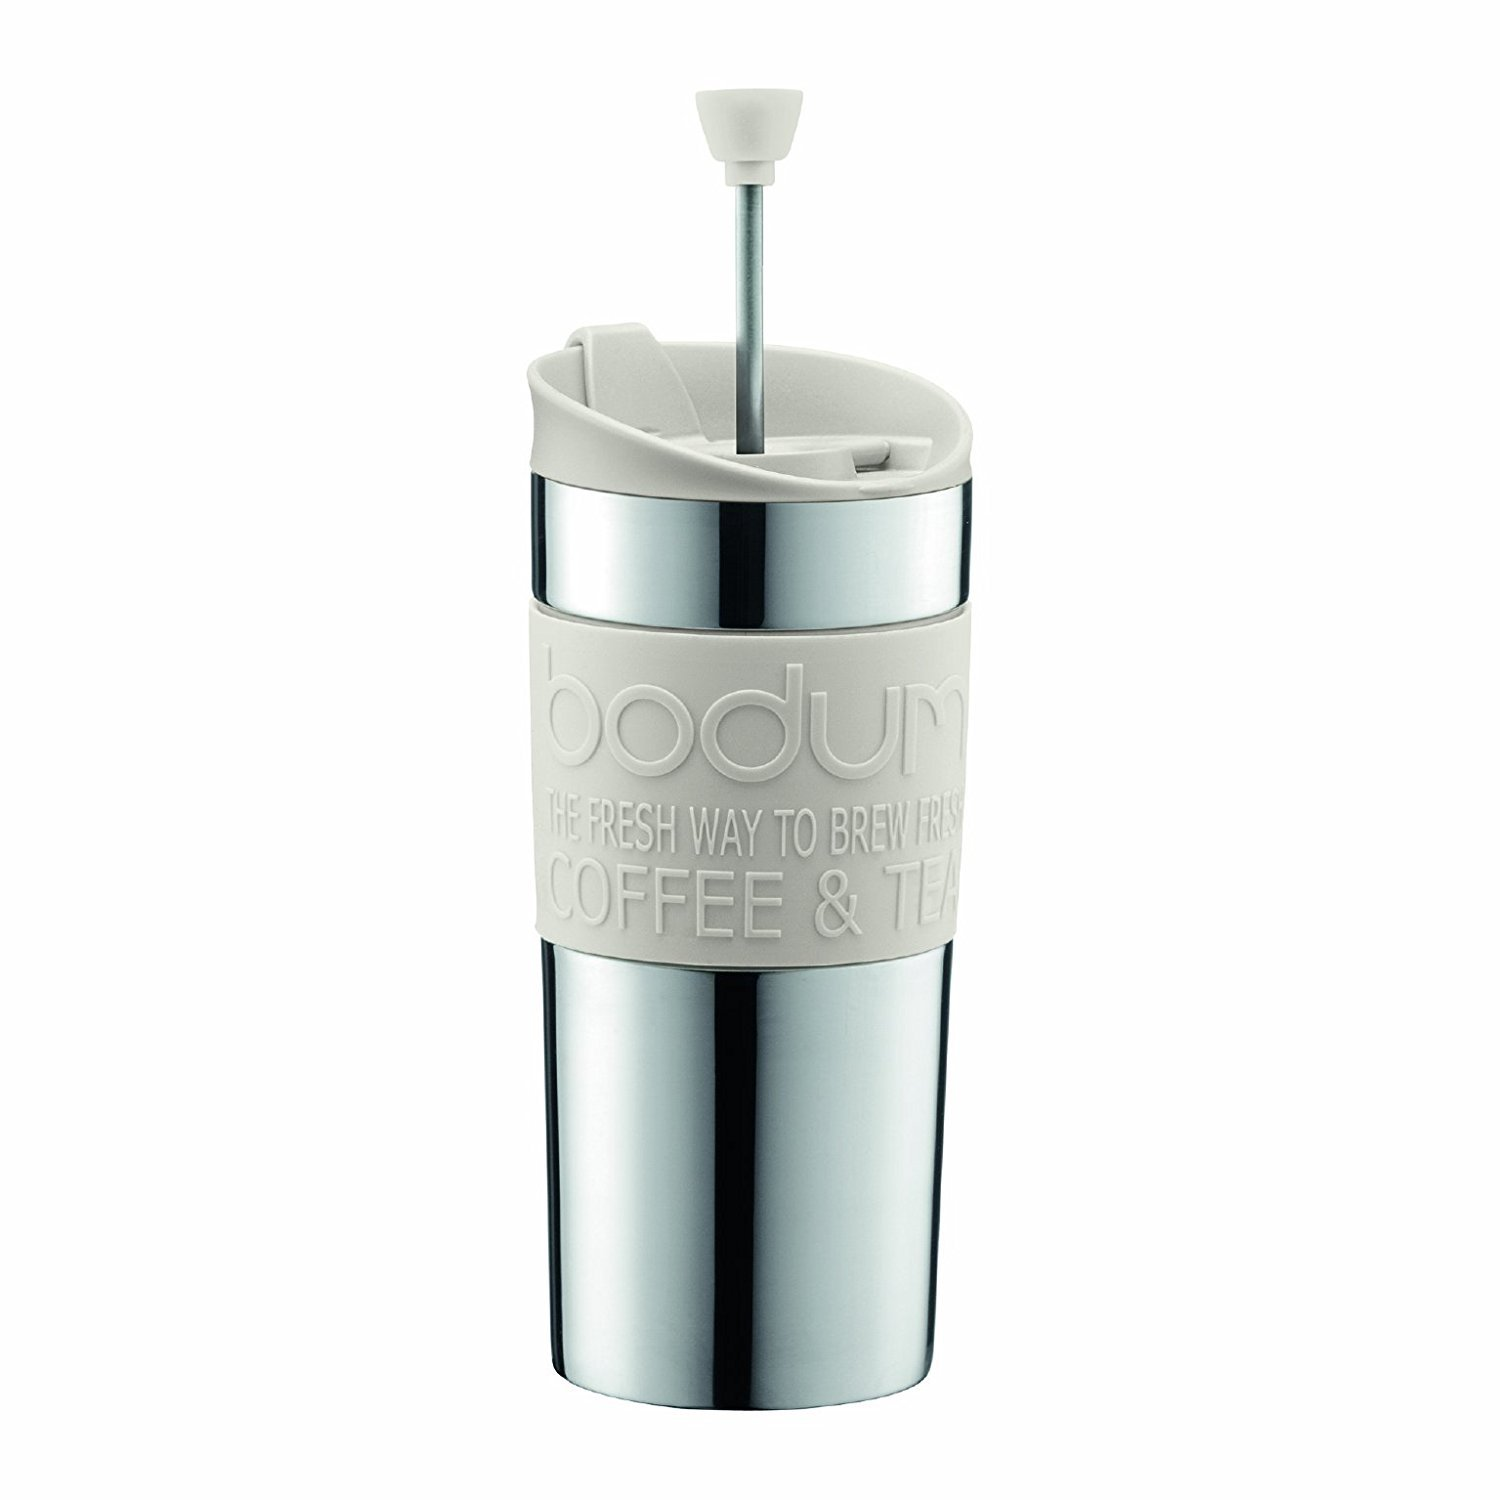 BODUM Travel French Press Coffee Maker Set, Stainless Steel with Extra Lid, Vacuum, 0.35 L/12 oz, White